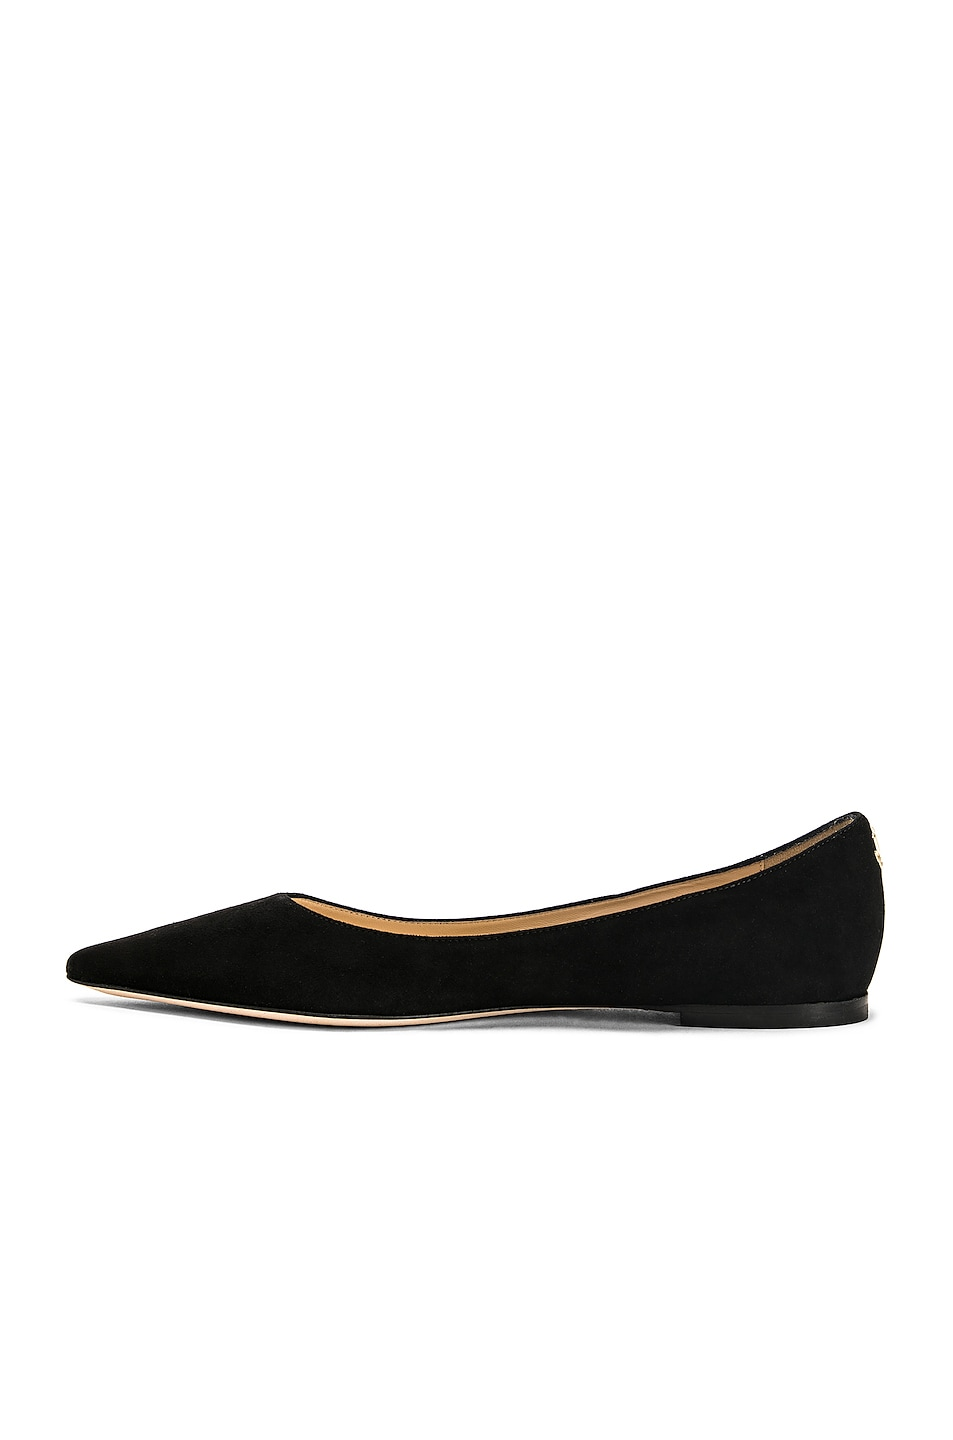 Image 5 of Jimmy Choo Suede Love Flat in Black